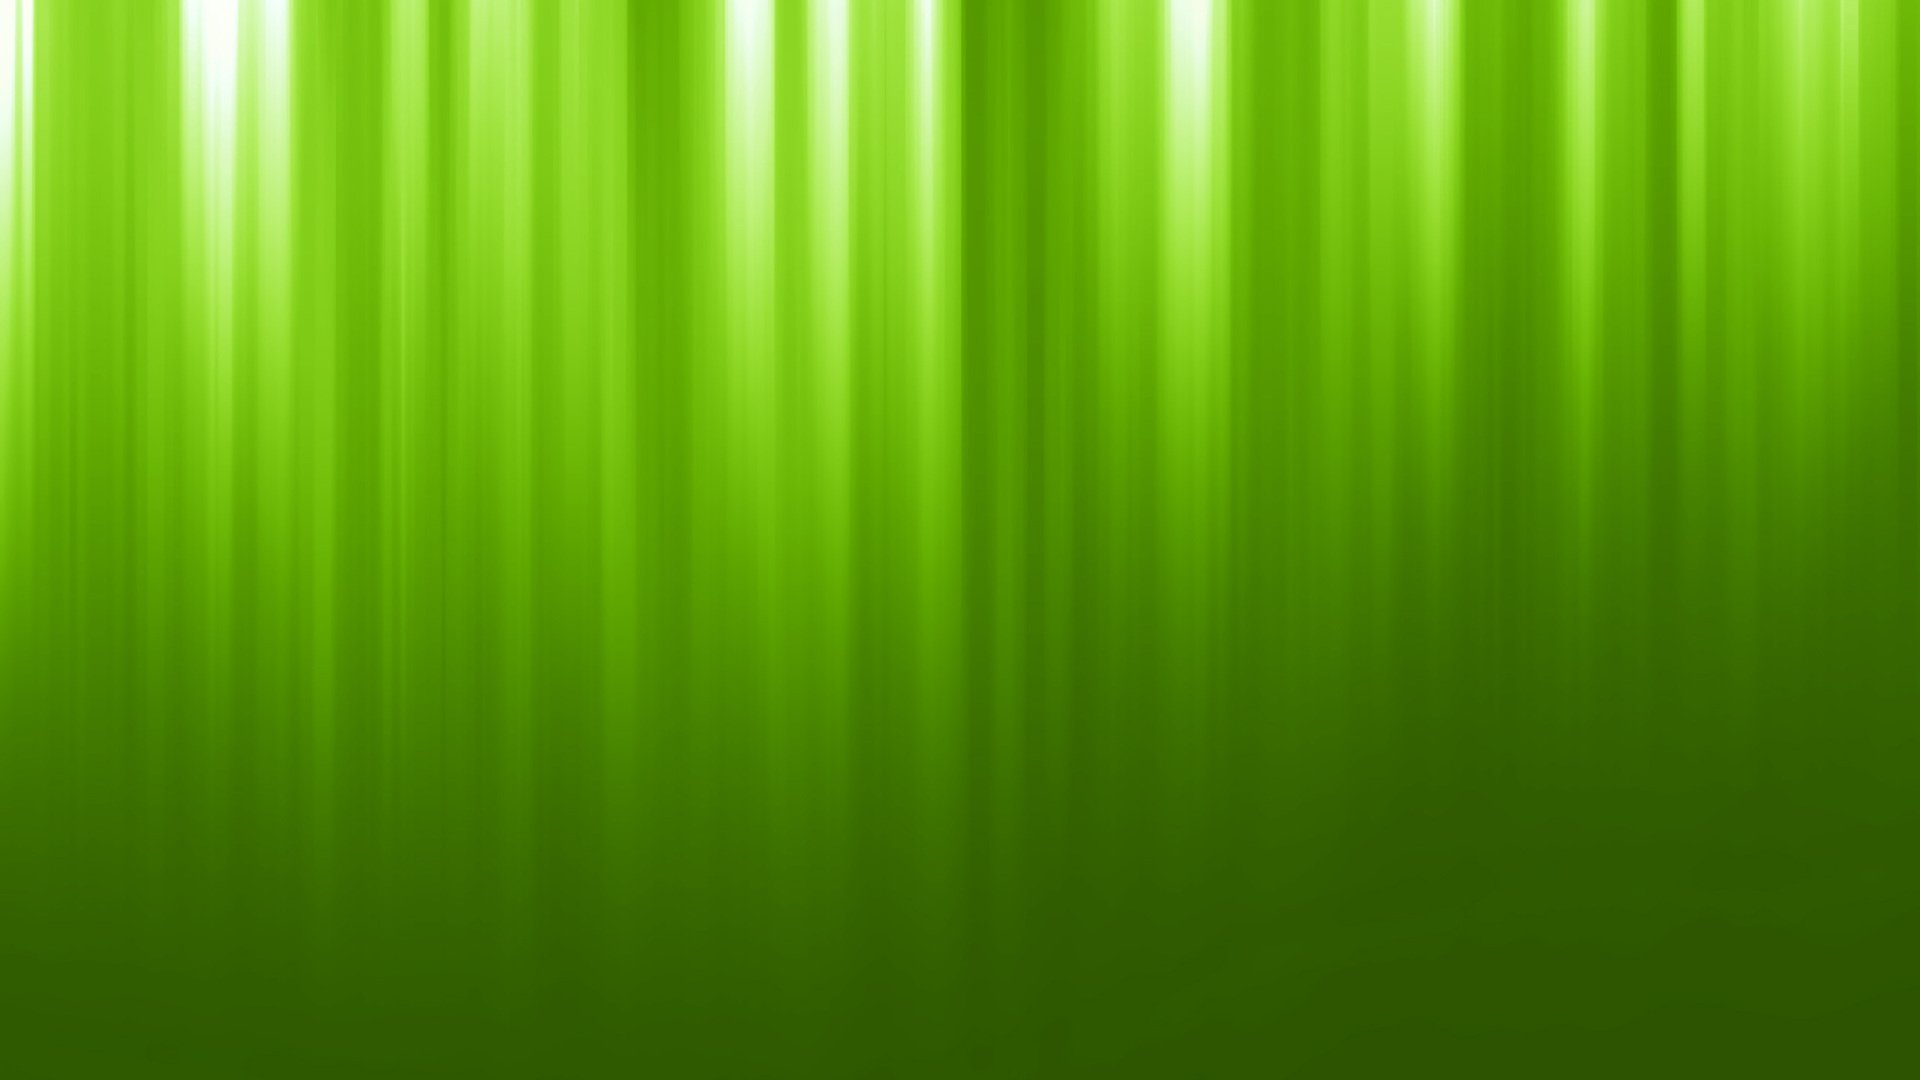 Download 44 HD Green Wallpapers for Windows and Mac 1920x1080